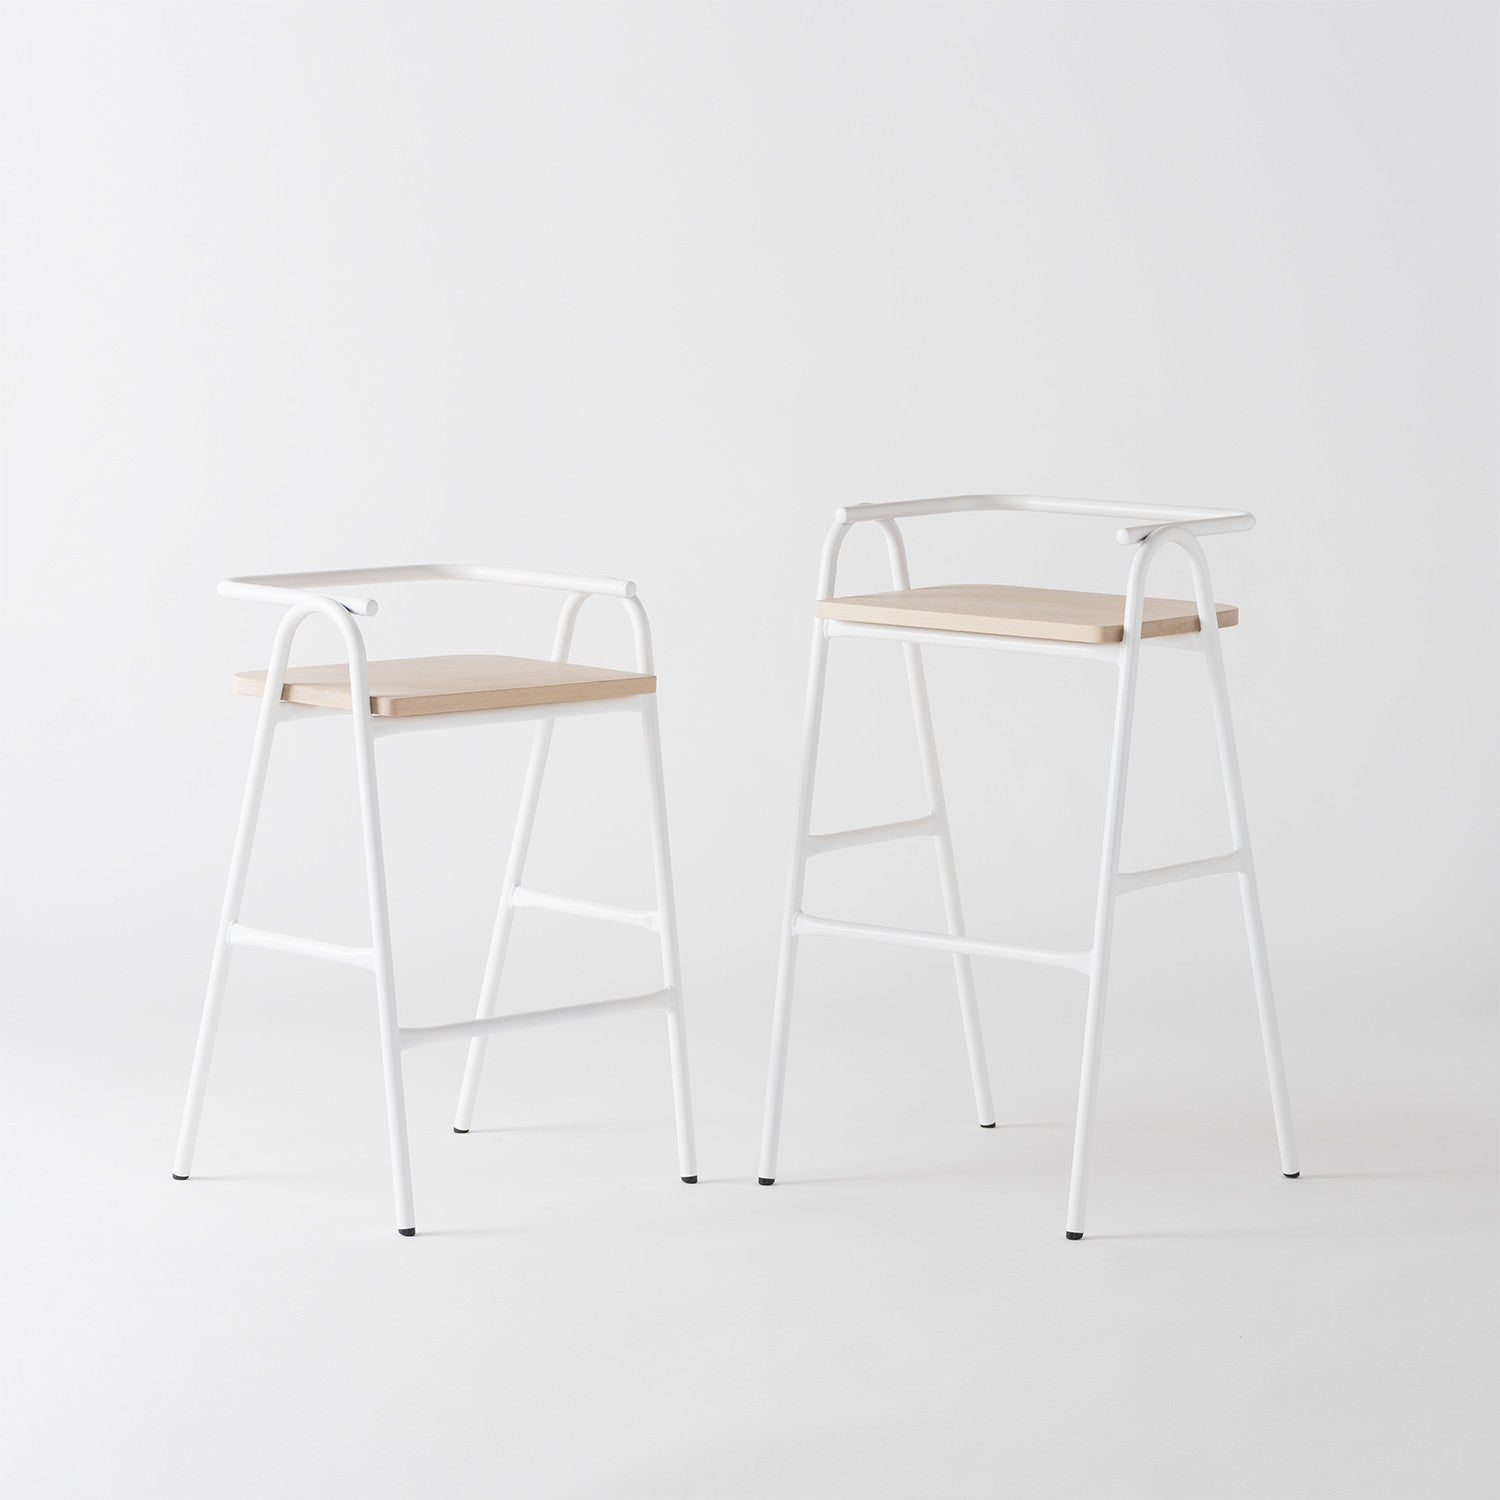 Half Hurdle High Chair by Dowel Jones